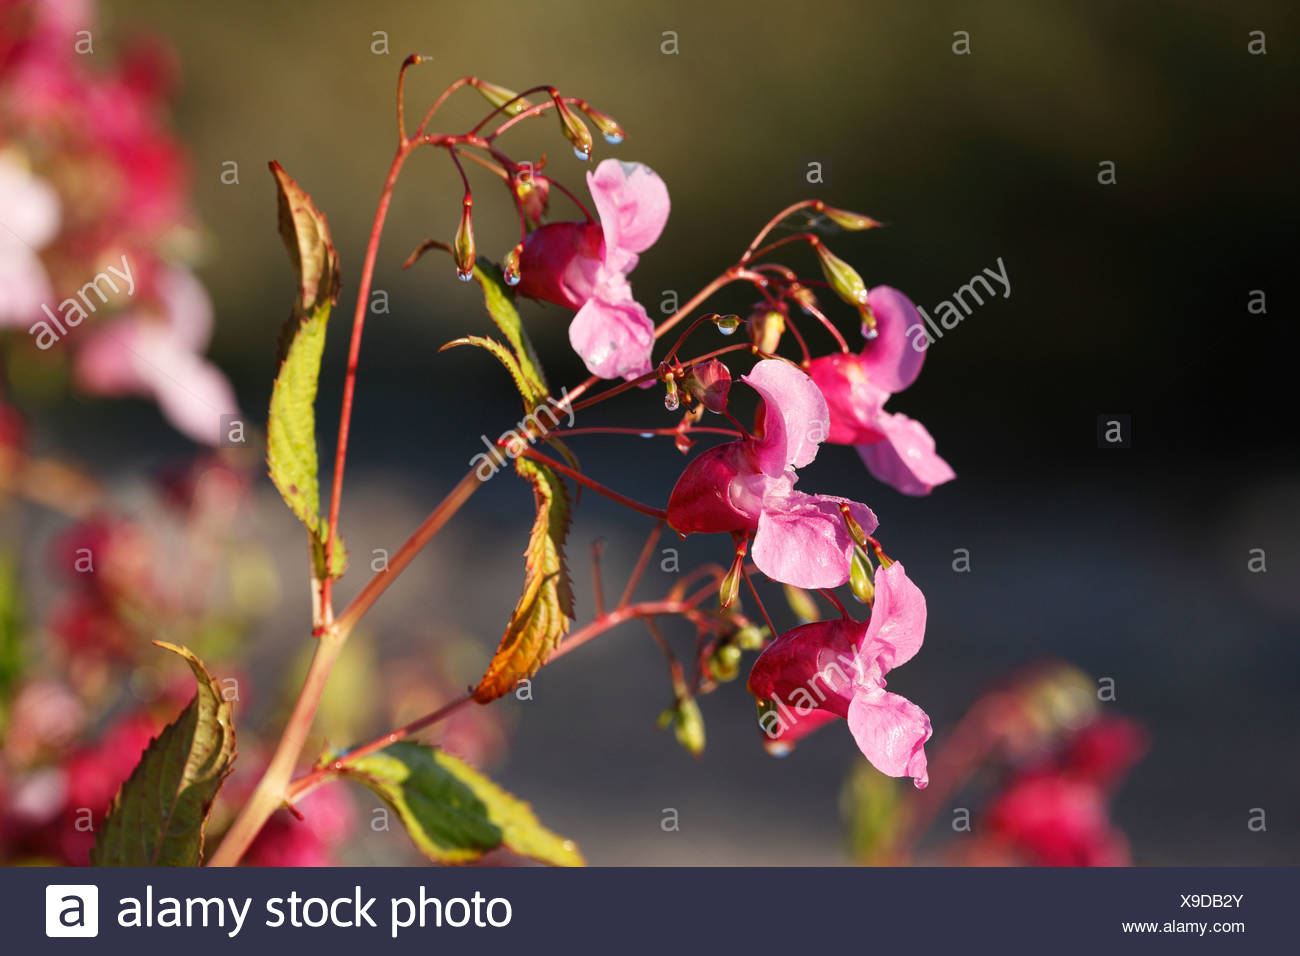 Flowers and seed pod of Himalayan balsam, Indian balsam (Impatiens glandulifera), neophyte Stock Photo